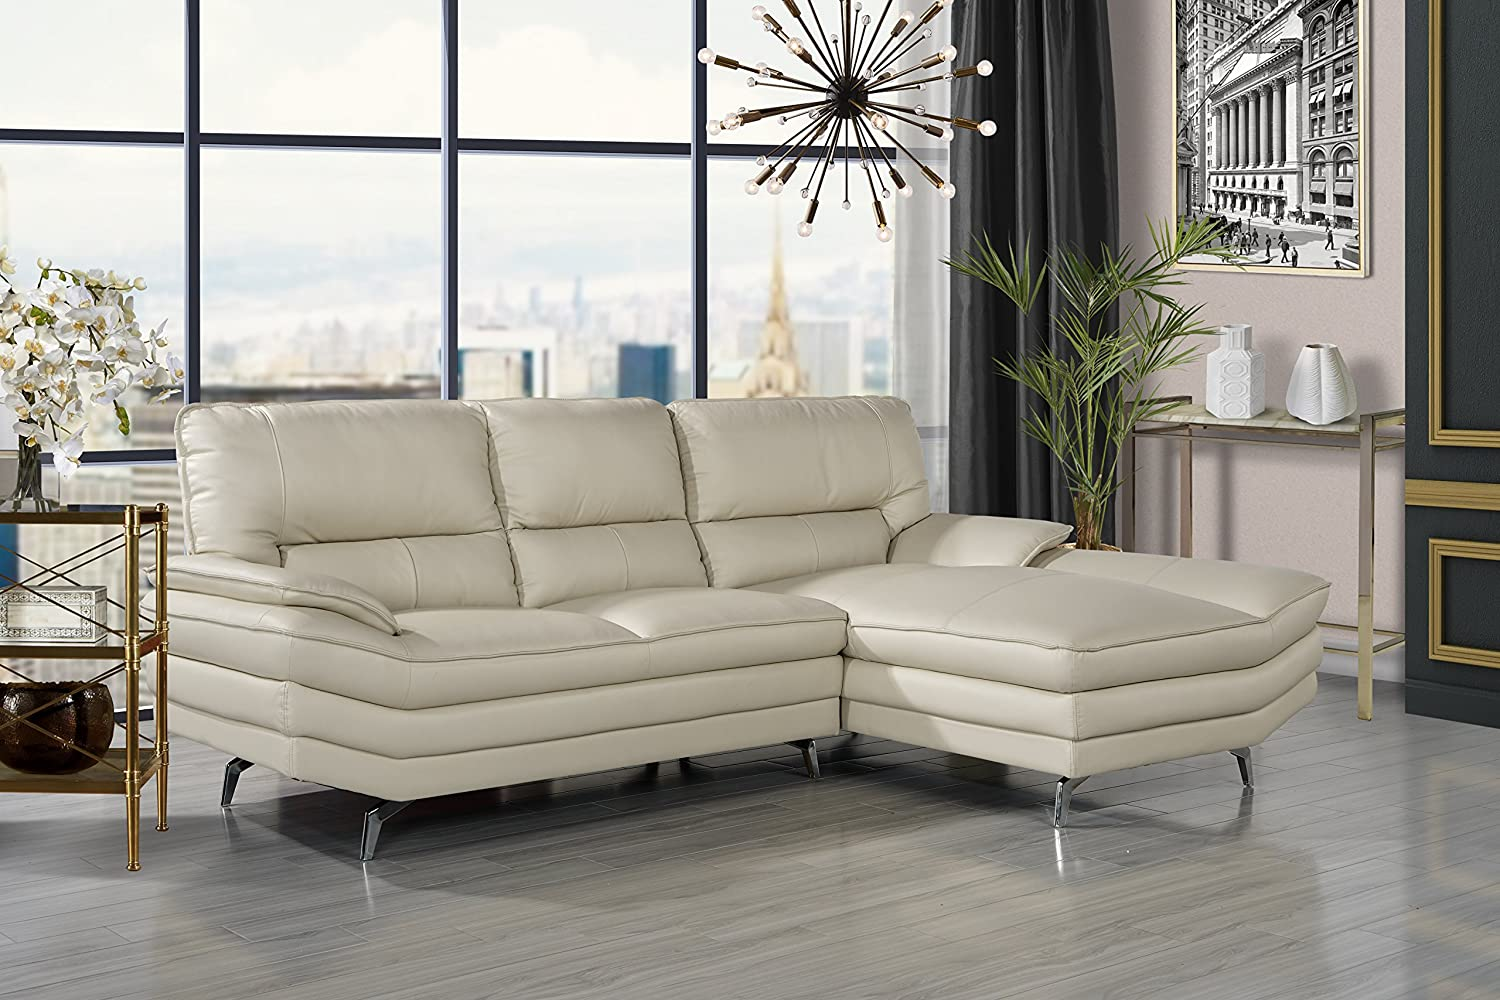 Amazon com divano roma furniture living room leather sectional sofa l shape couch with chaise lounge beige kitchen dining